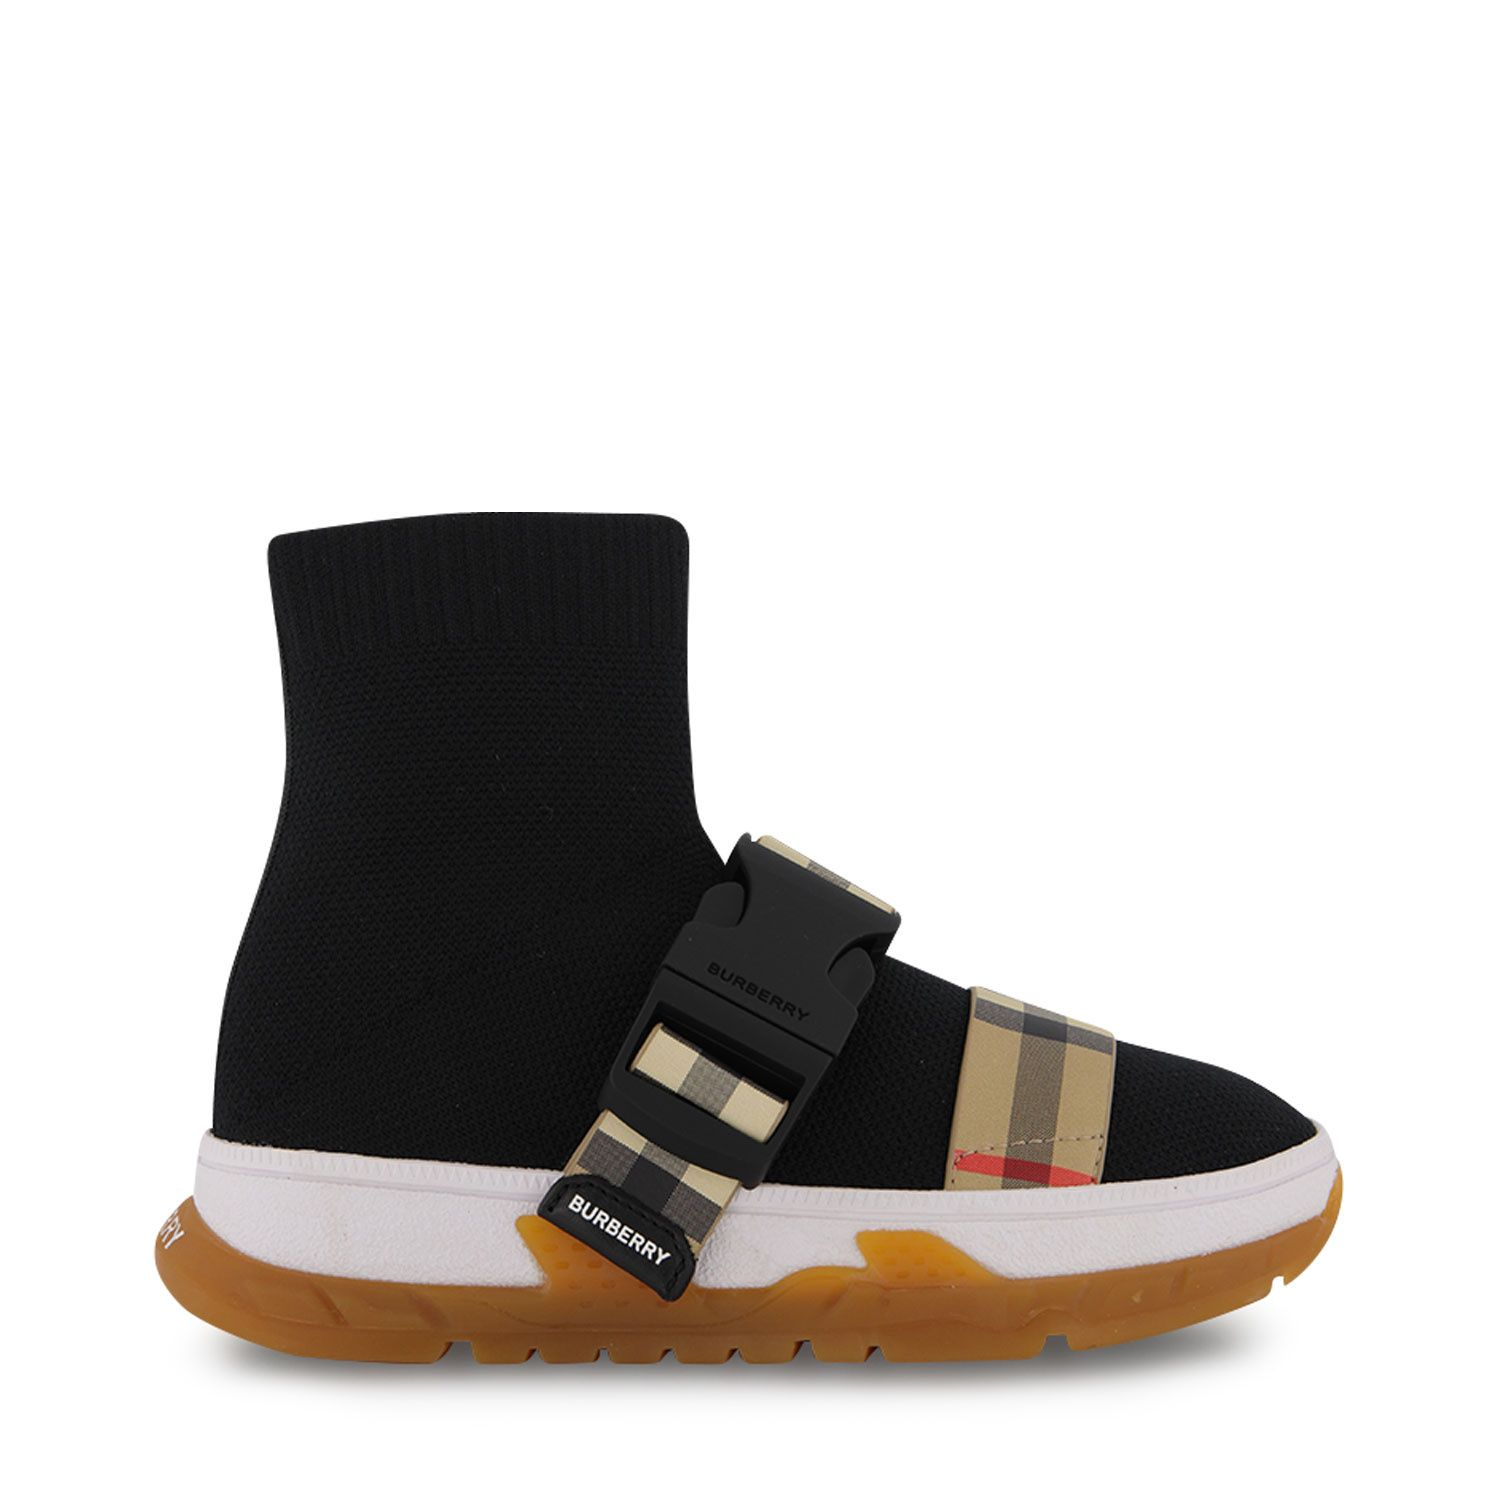 Picture of Burberry 8041008 kids sneakers black